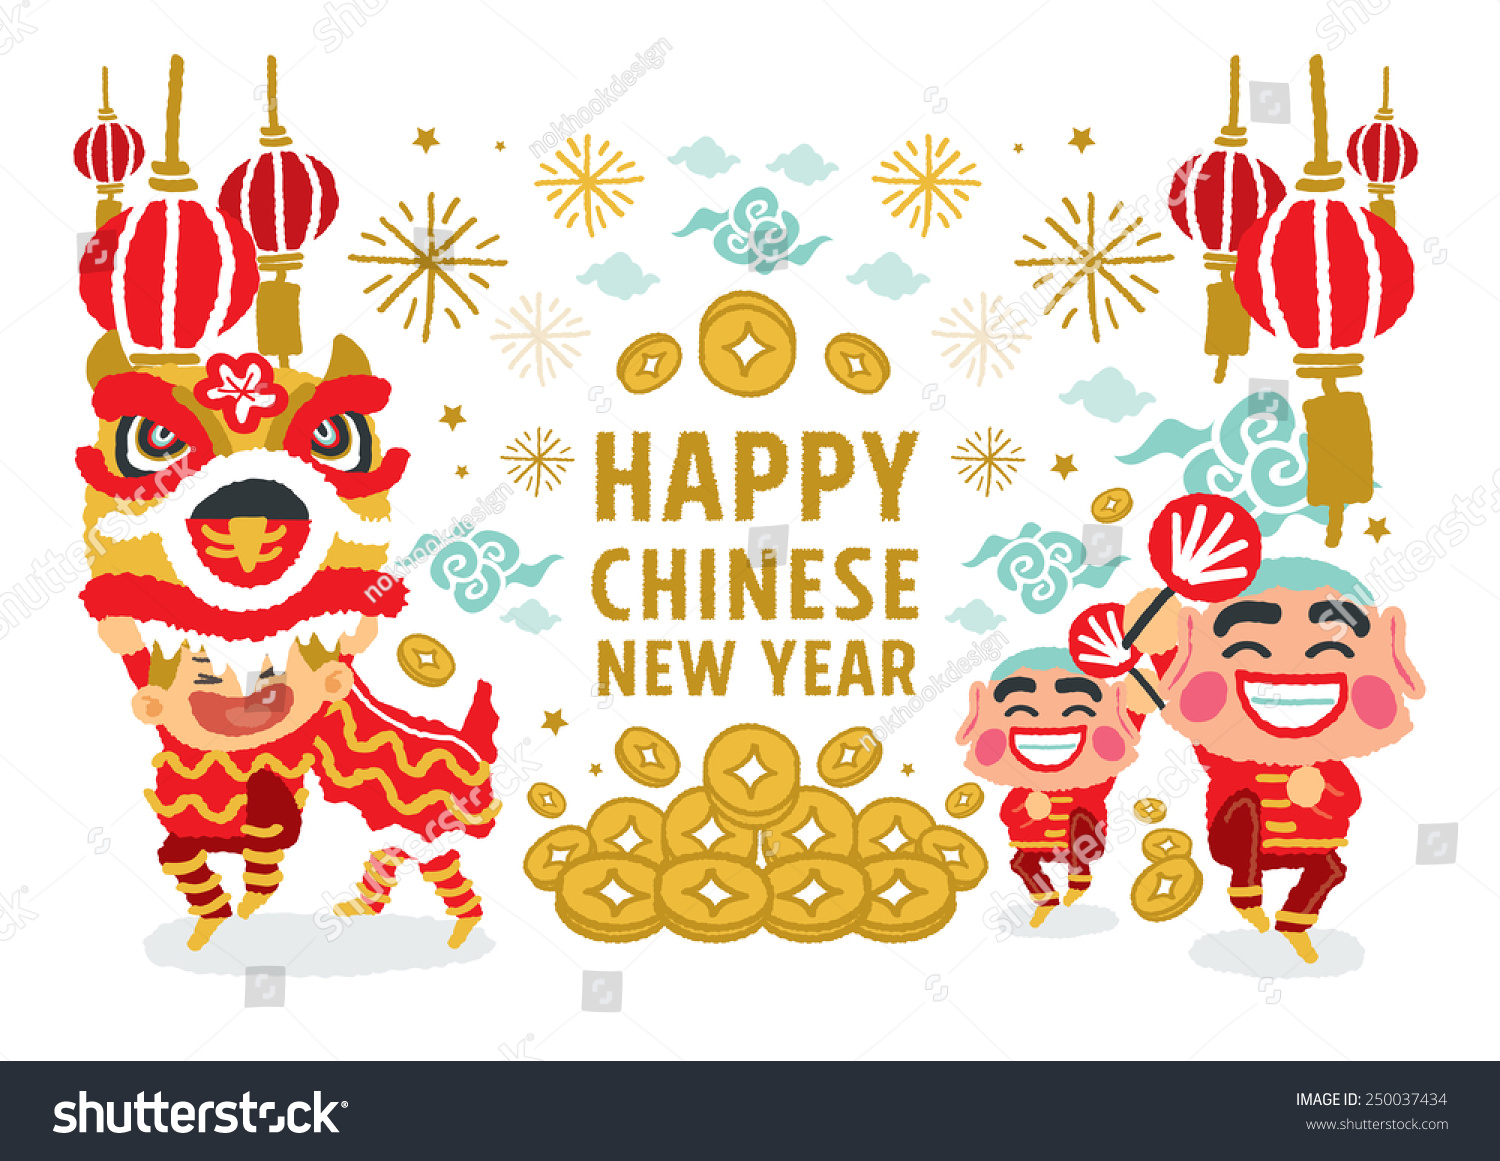 From Julian To Gregorian Calendar Time And Date Chinese Lion Dancing Vector Hot Girls Wallpaper